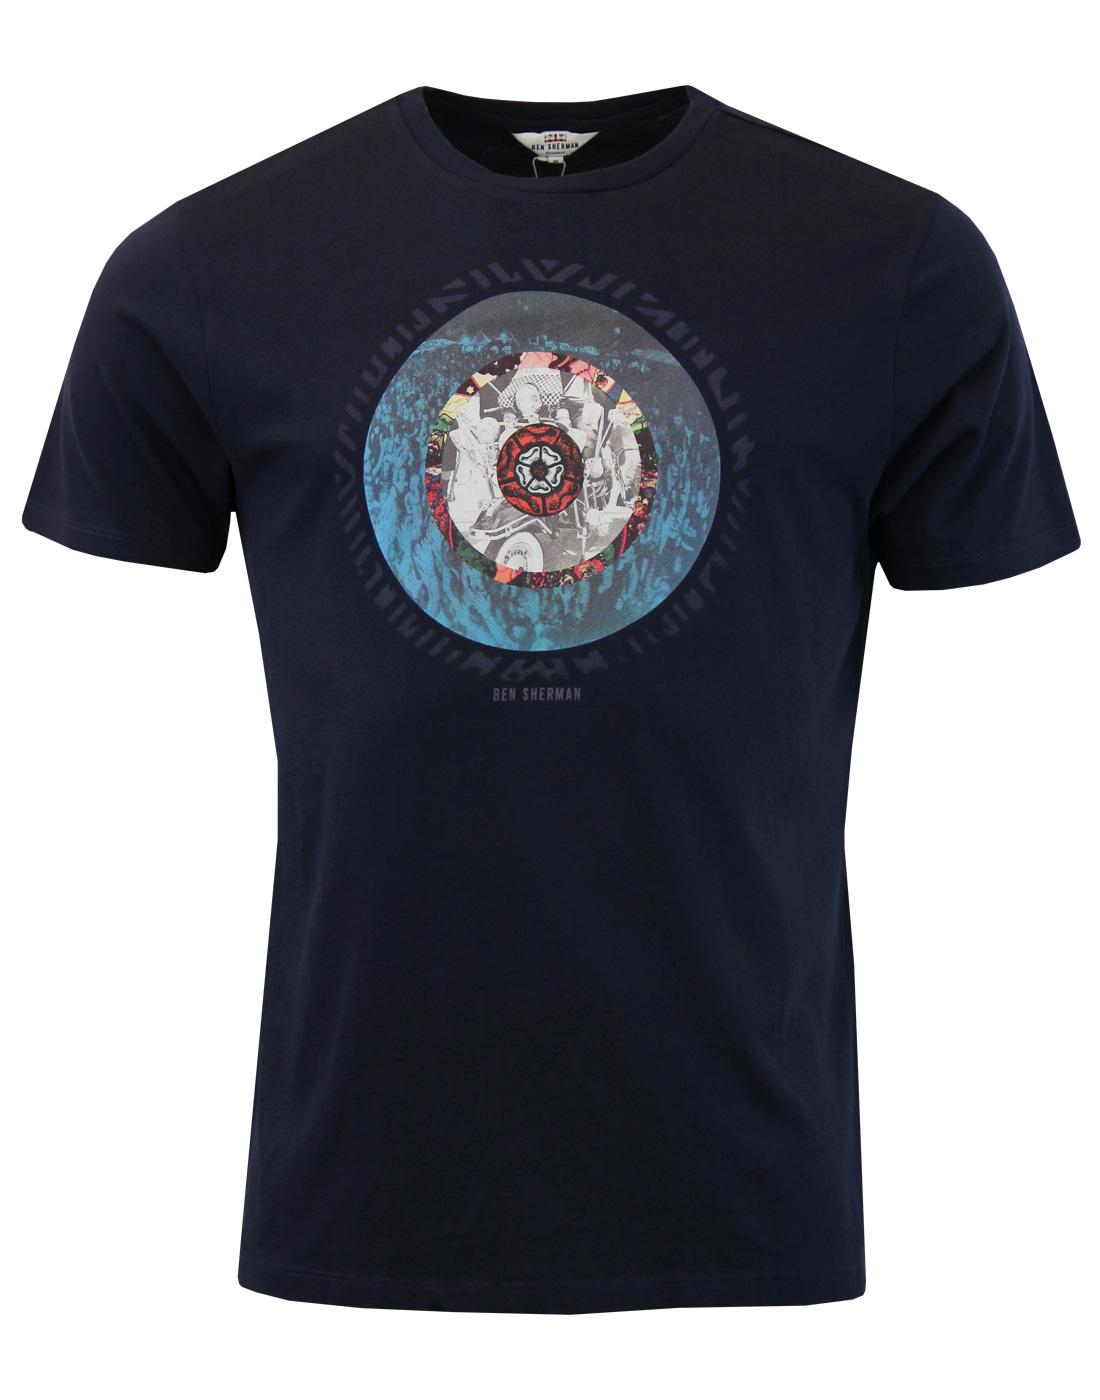 BEN SHERMAN Mod Northern Soul Photo Target T-shirt